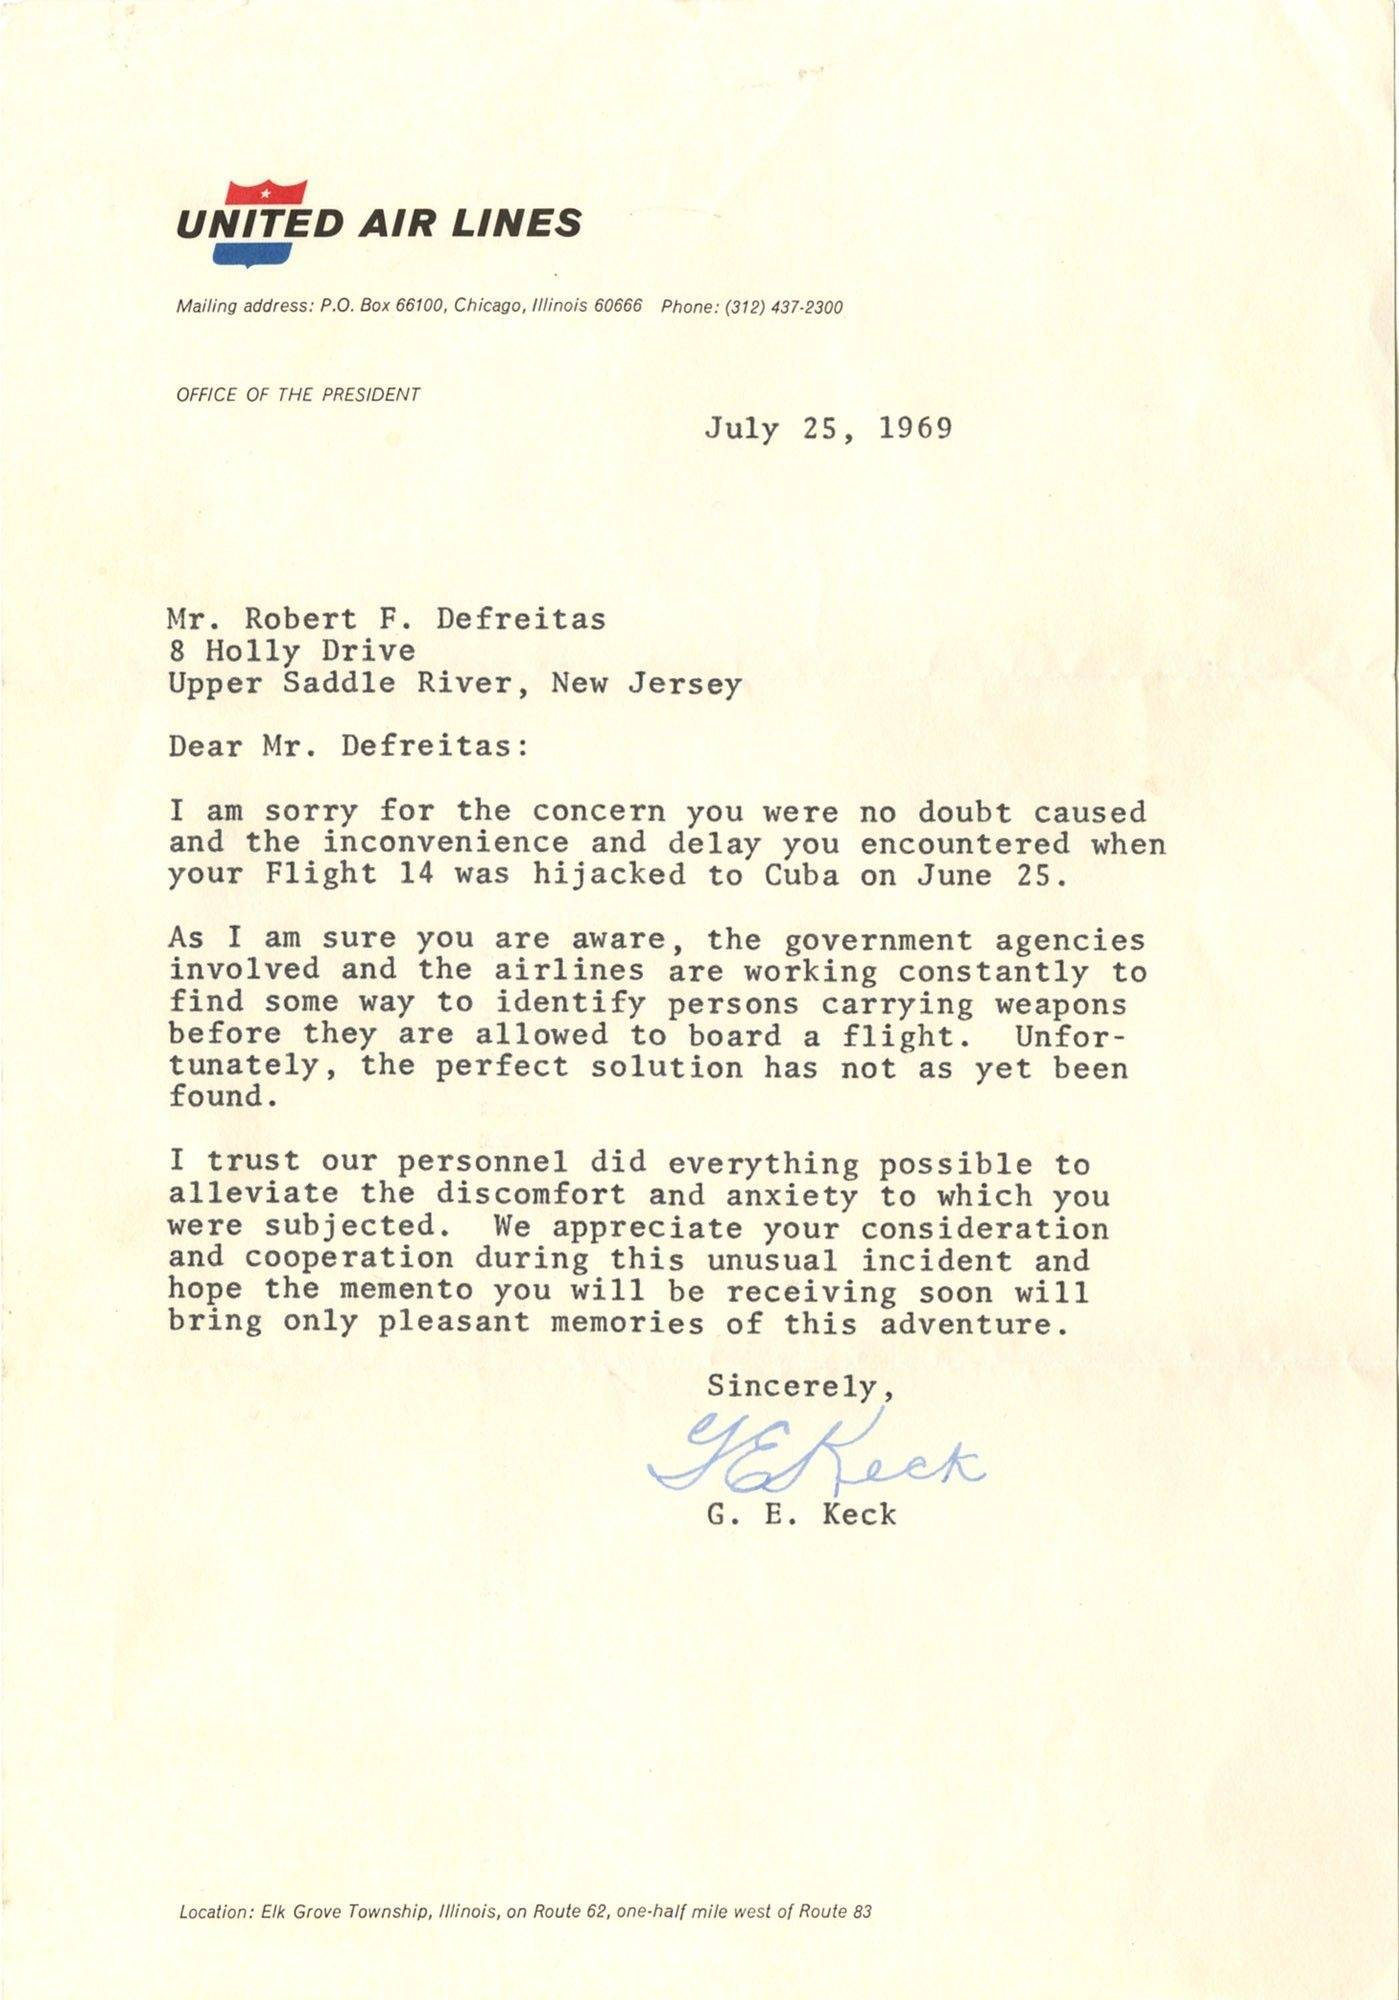 Letter from United Airlines to Bob DeFreitas after his 1969 hijacking ordeal.